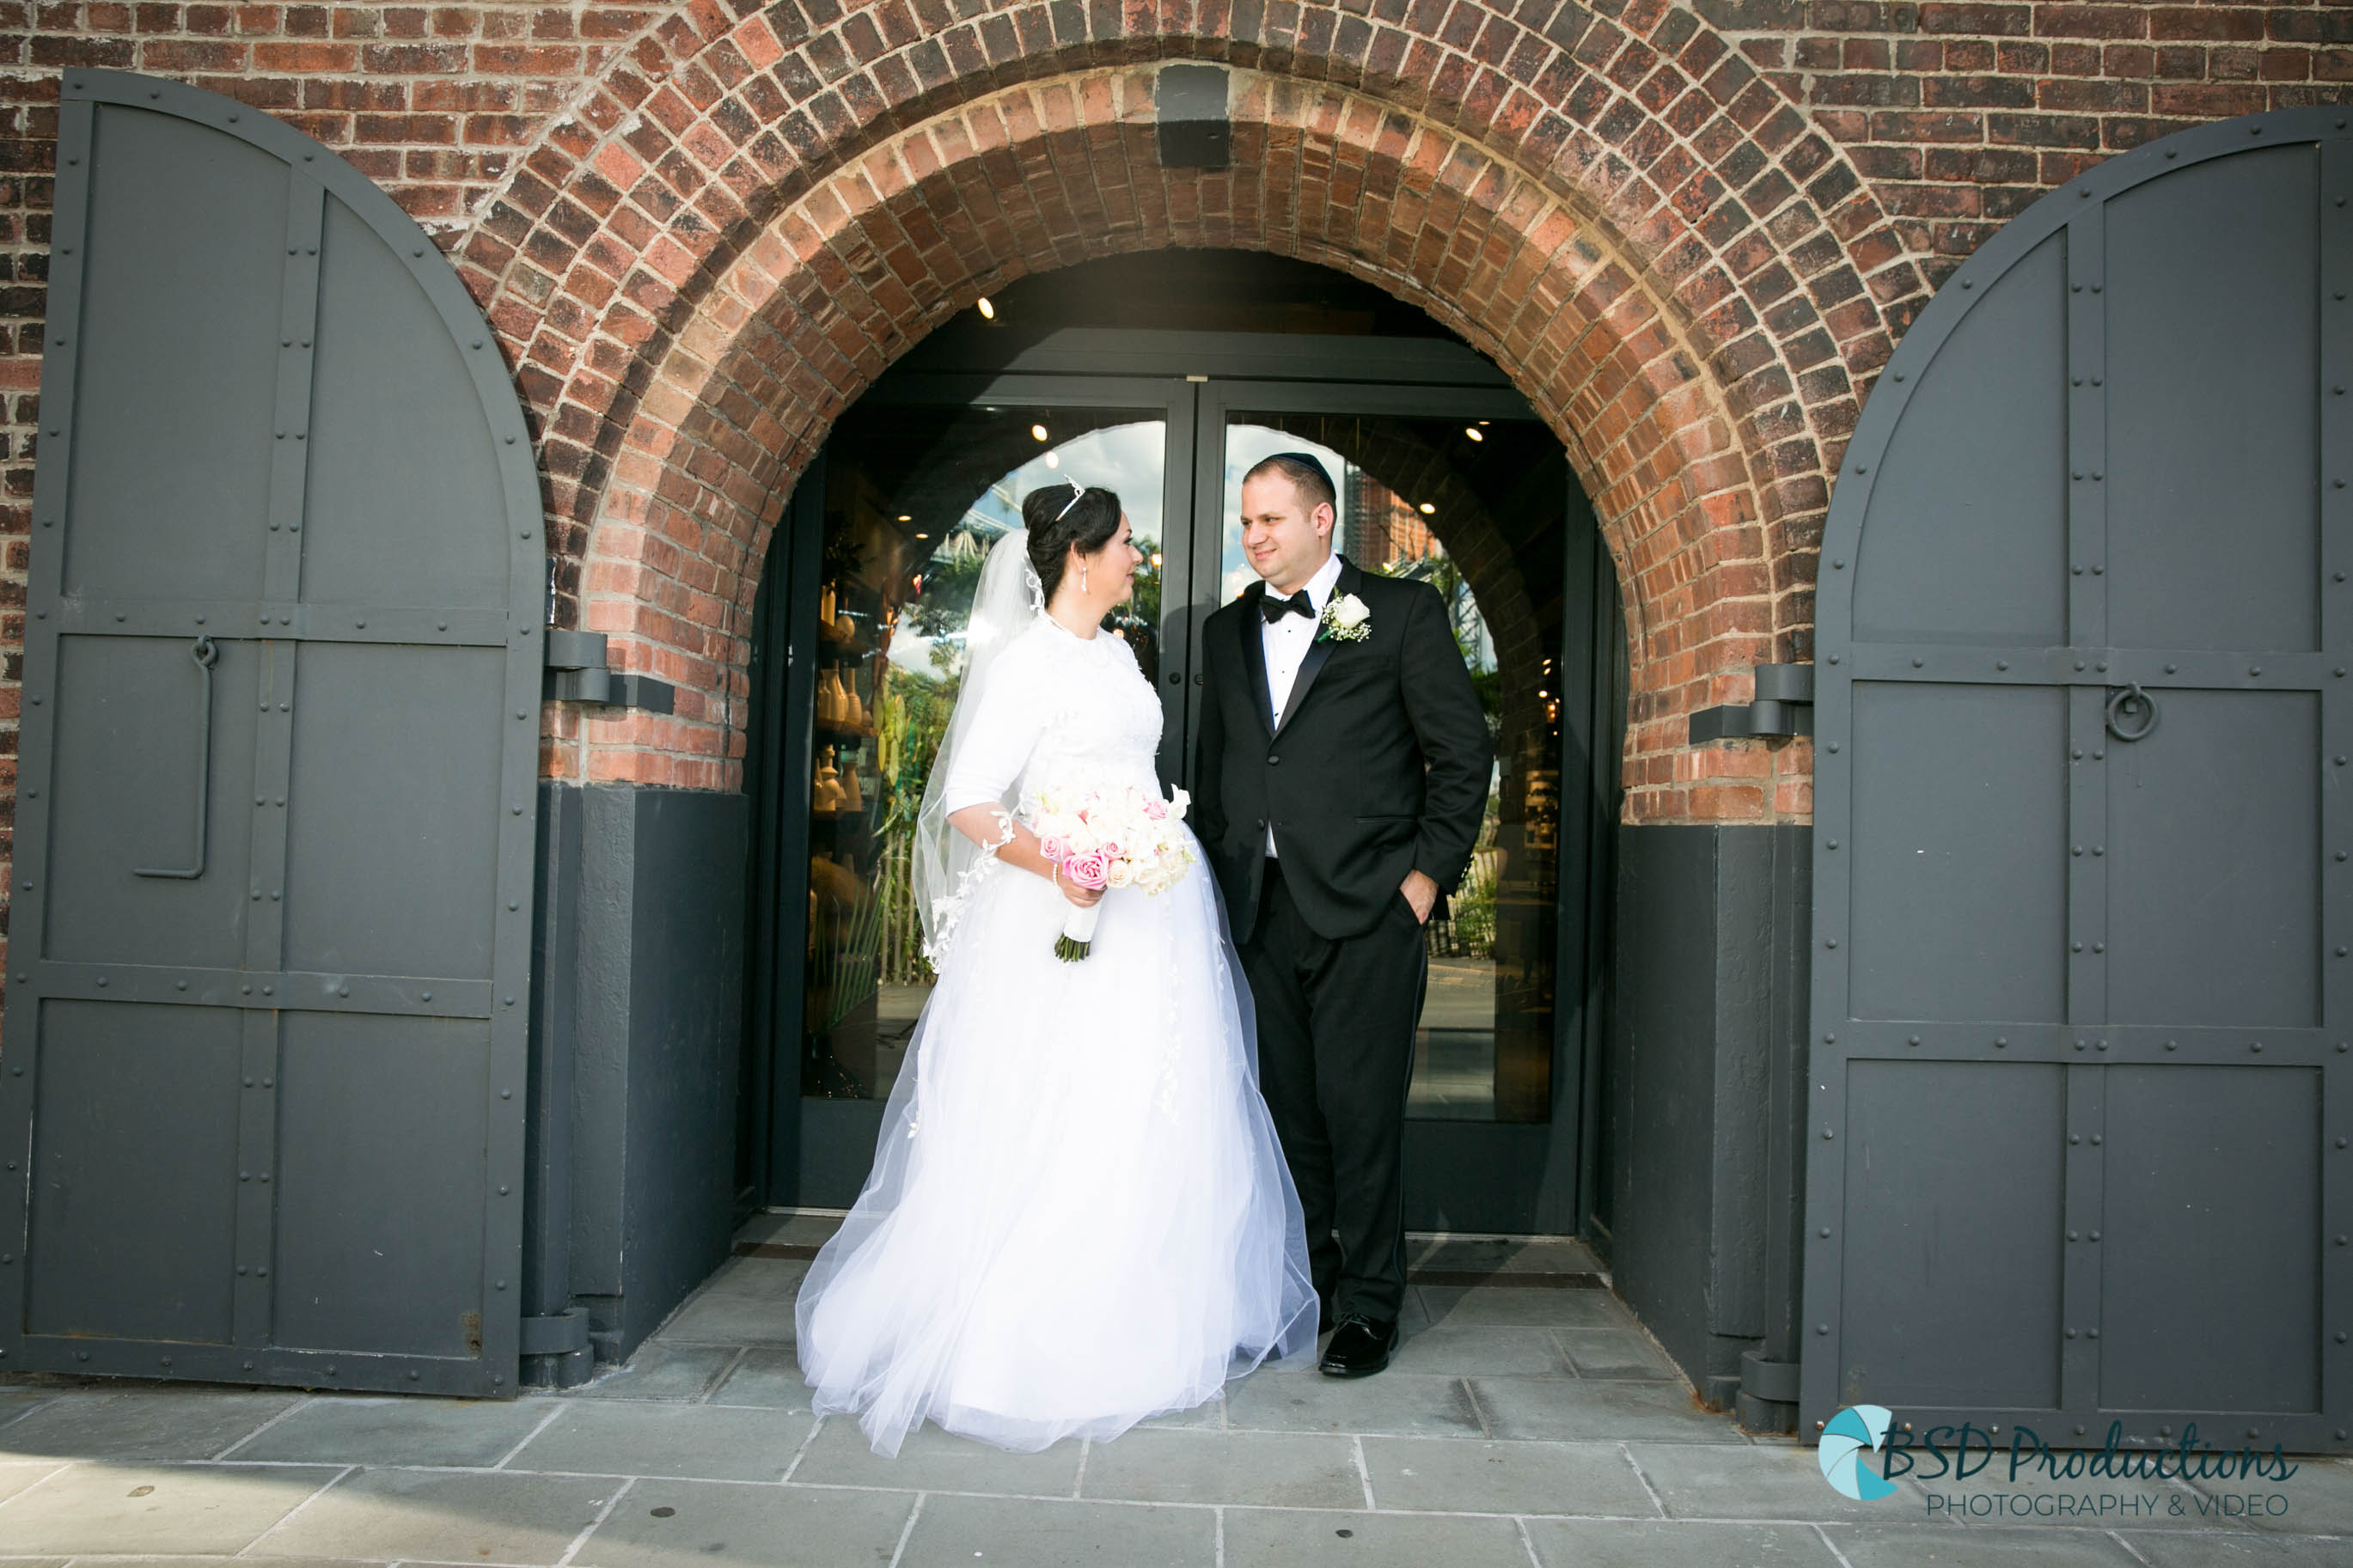 UH5A0230 Wedding – BSD Productions Photography